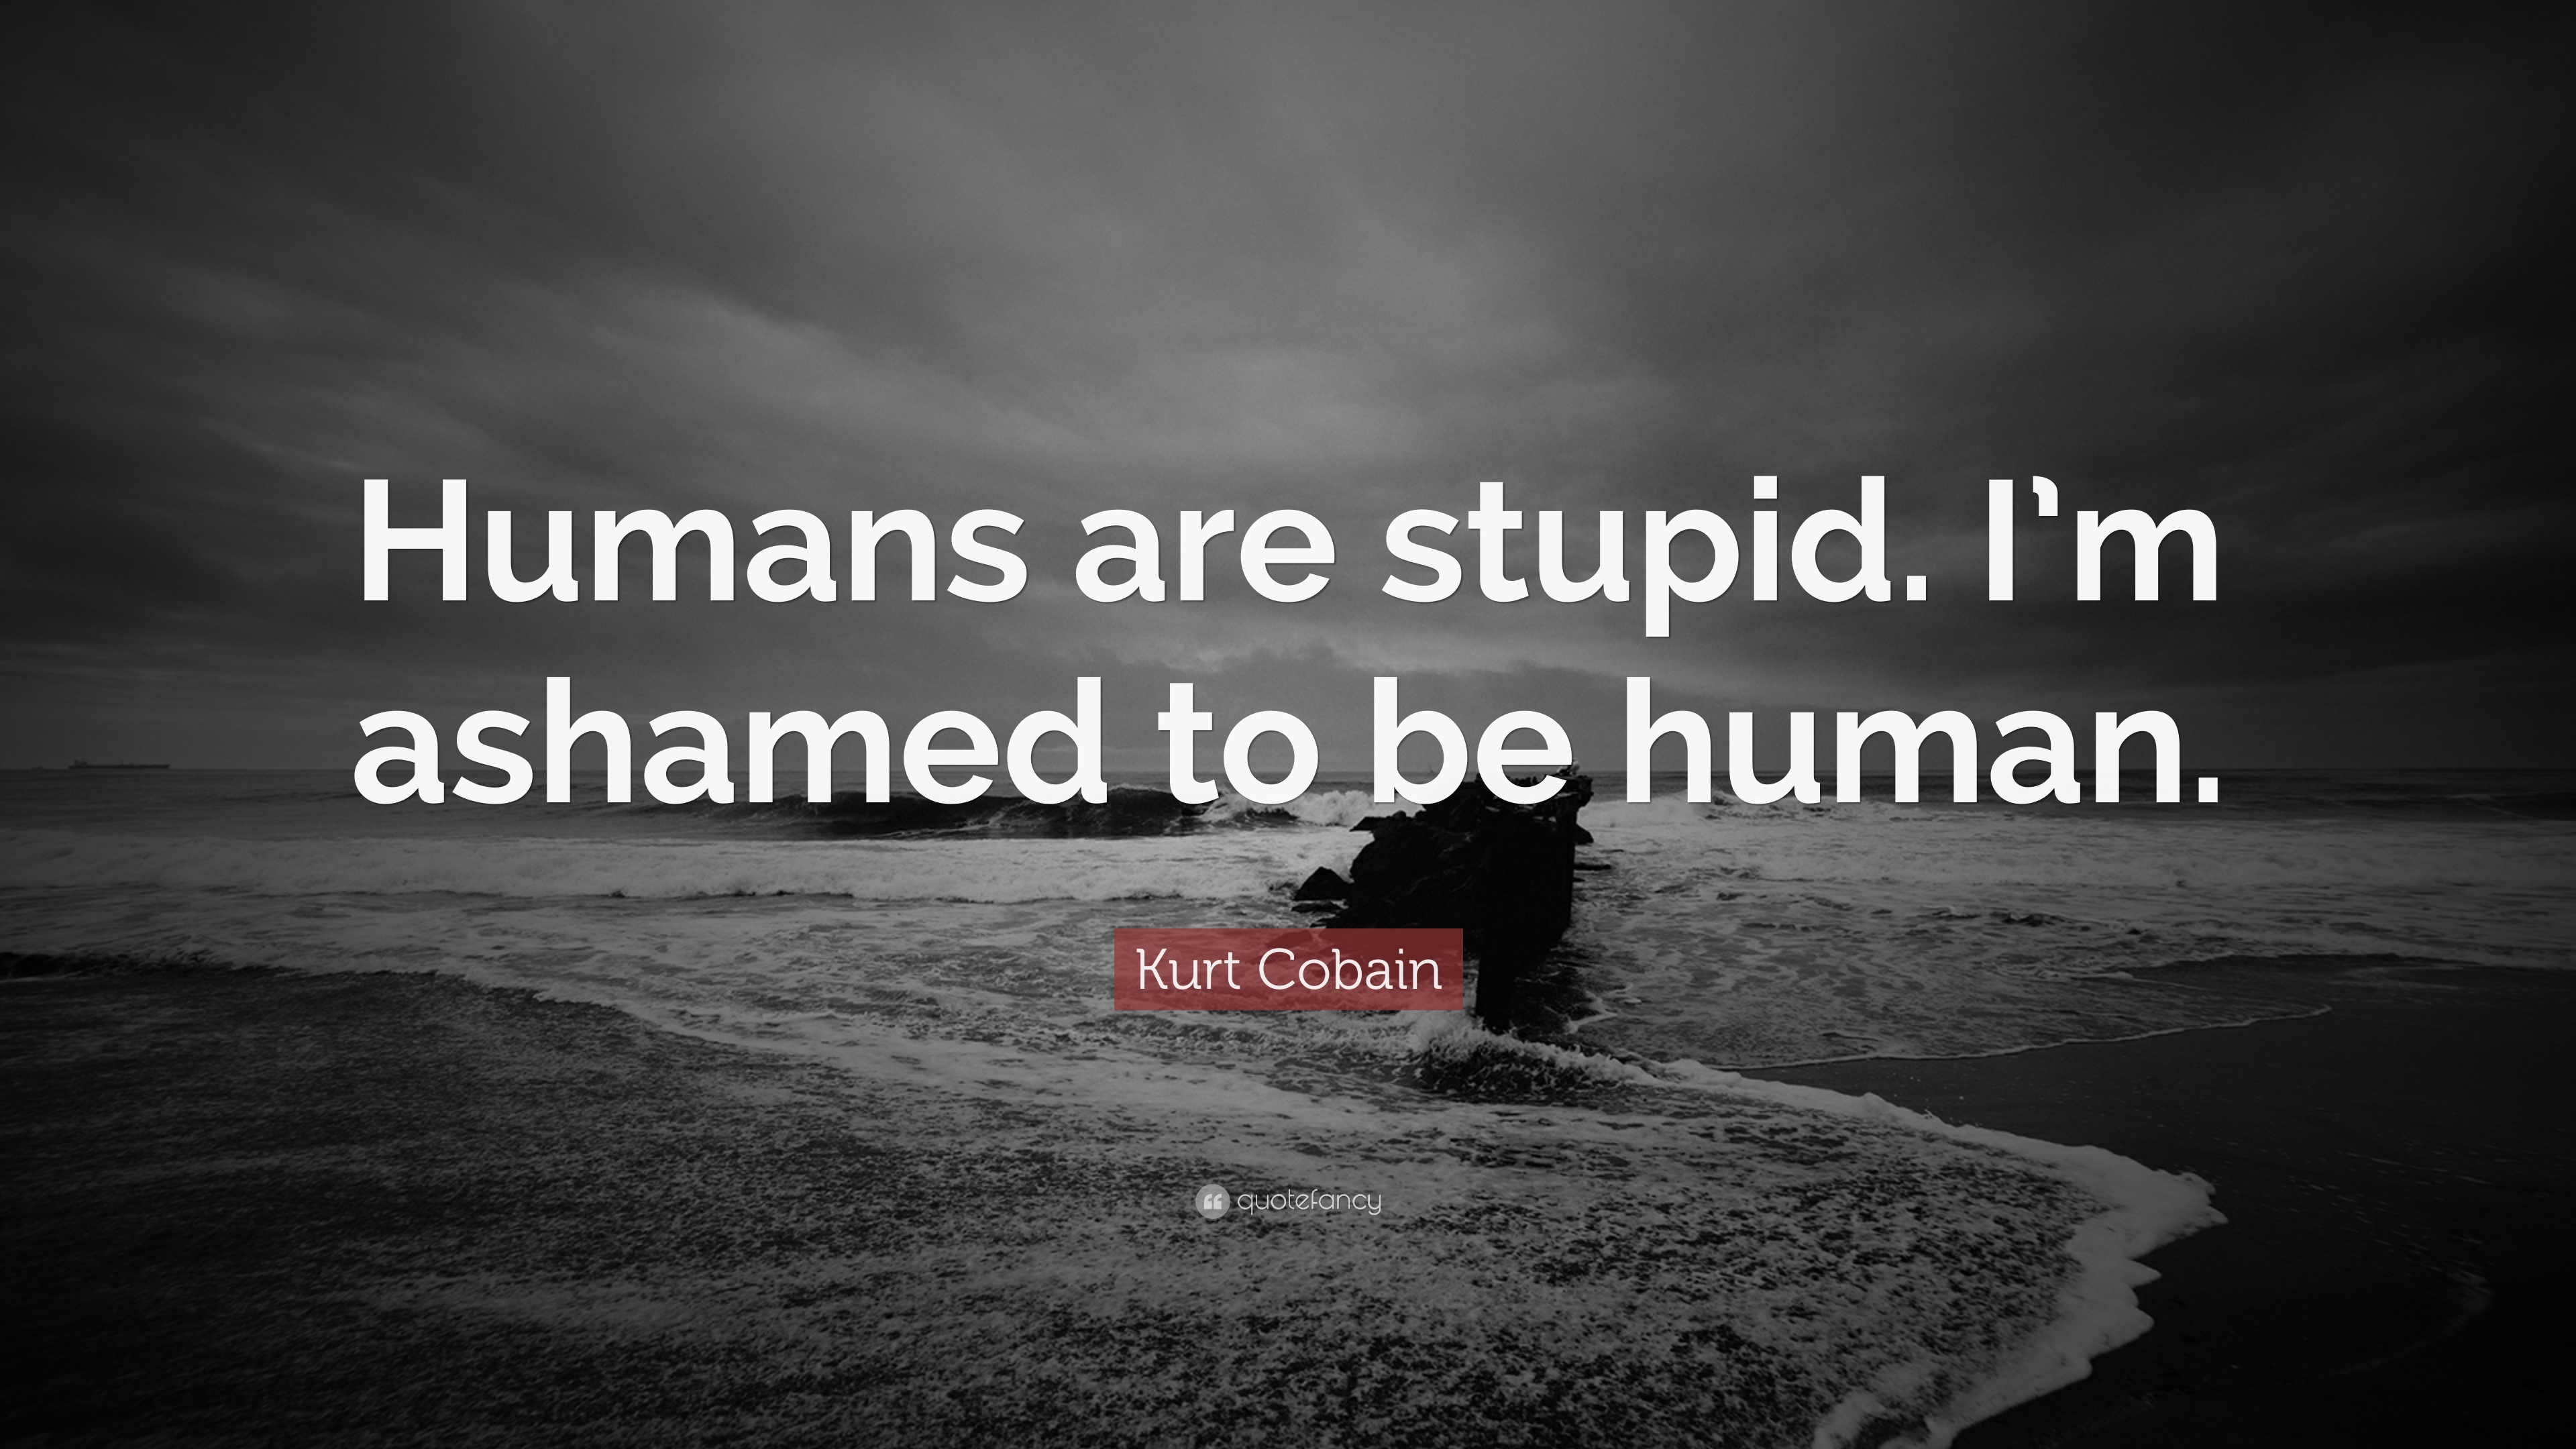 Best Car Live Wallpapers Android Download Kurt Cobain Quotes Wallpaper Gallery